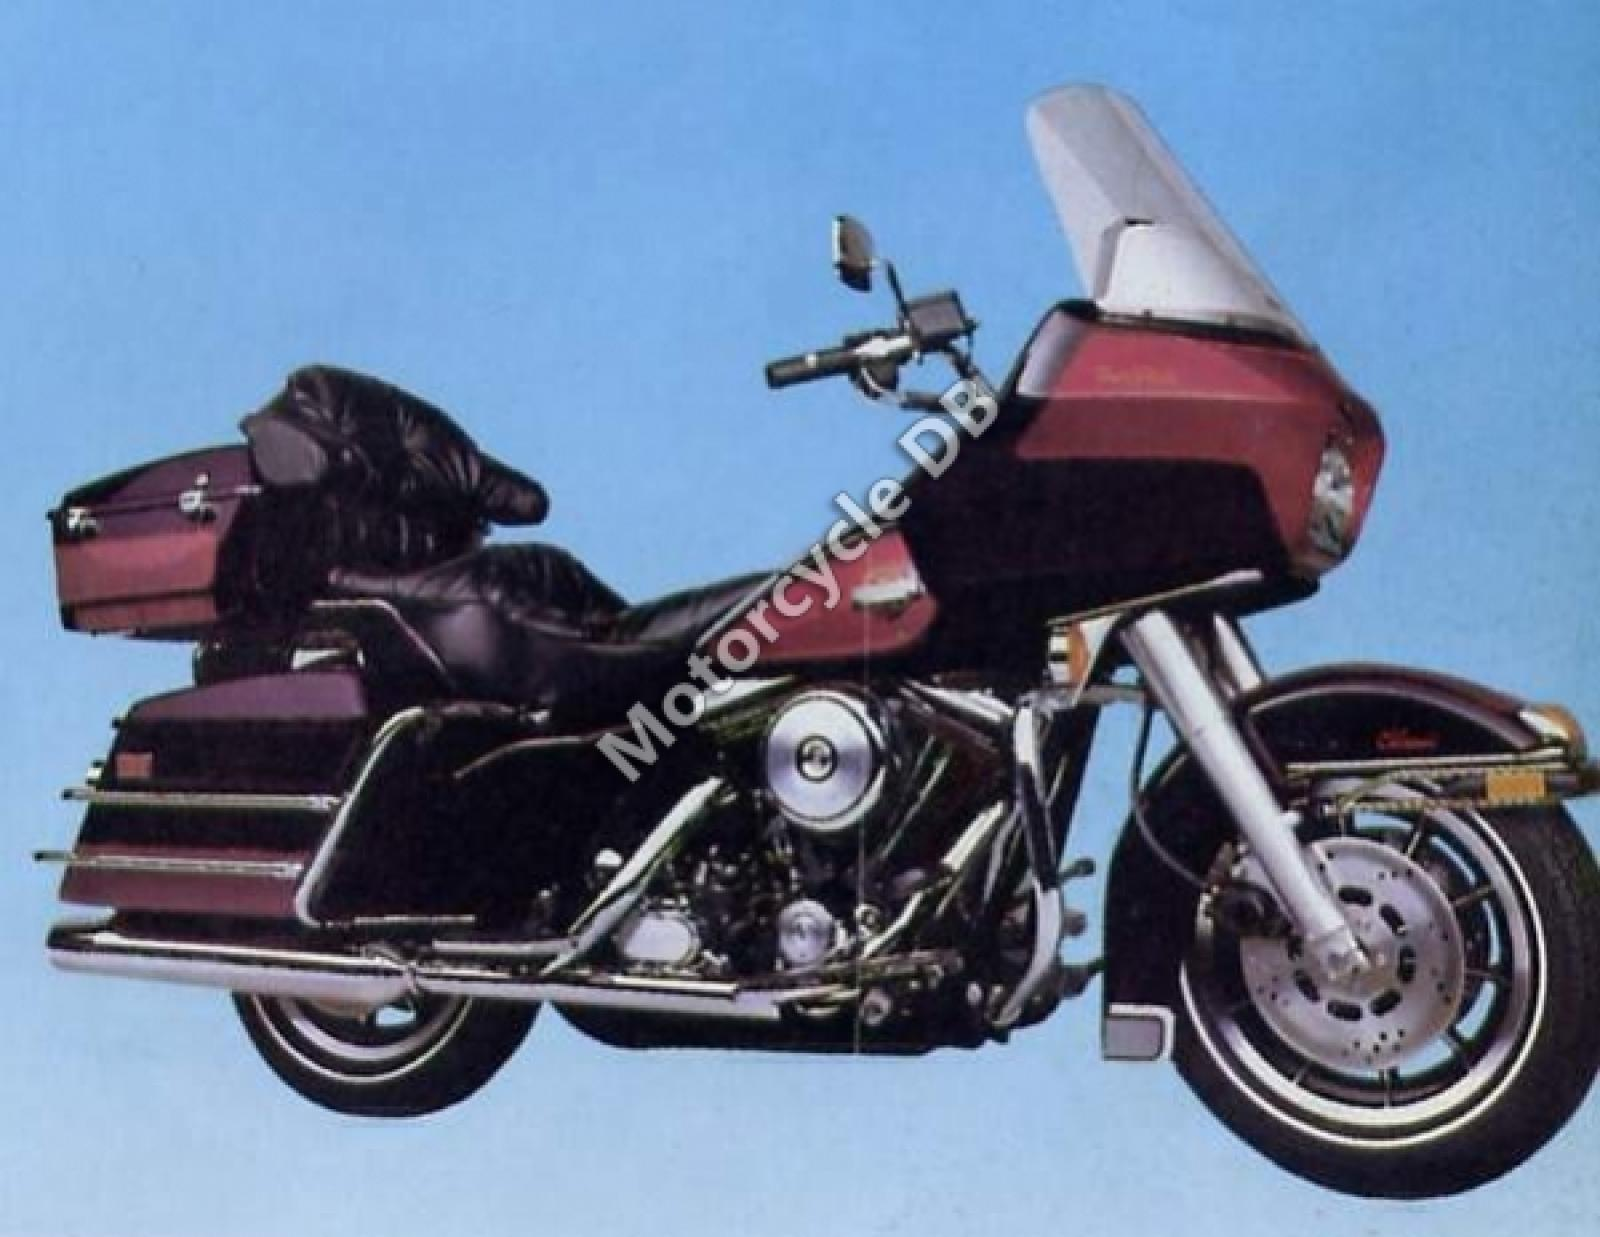 Harley-Davidson FLHTC 1340 Electra Glide Classic 1994 pics #16379